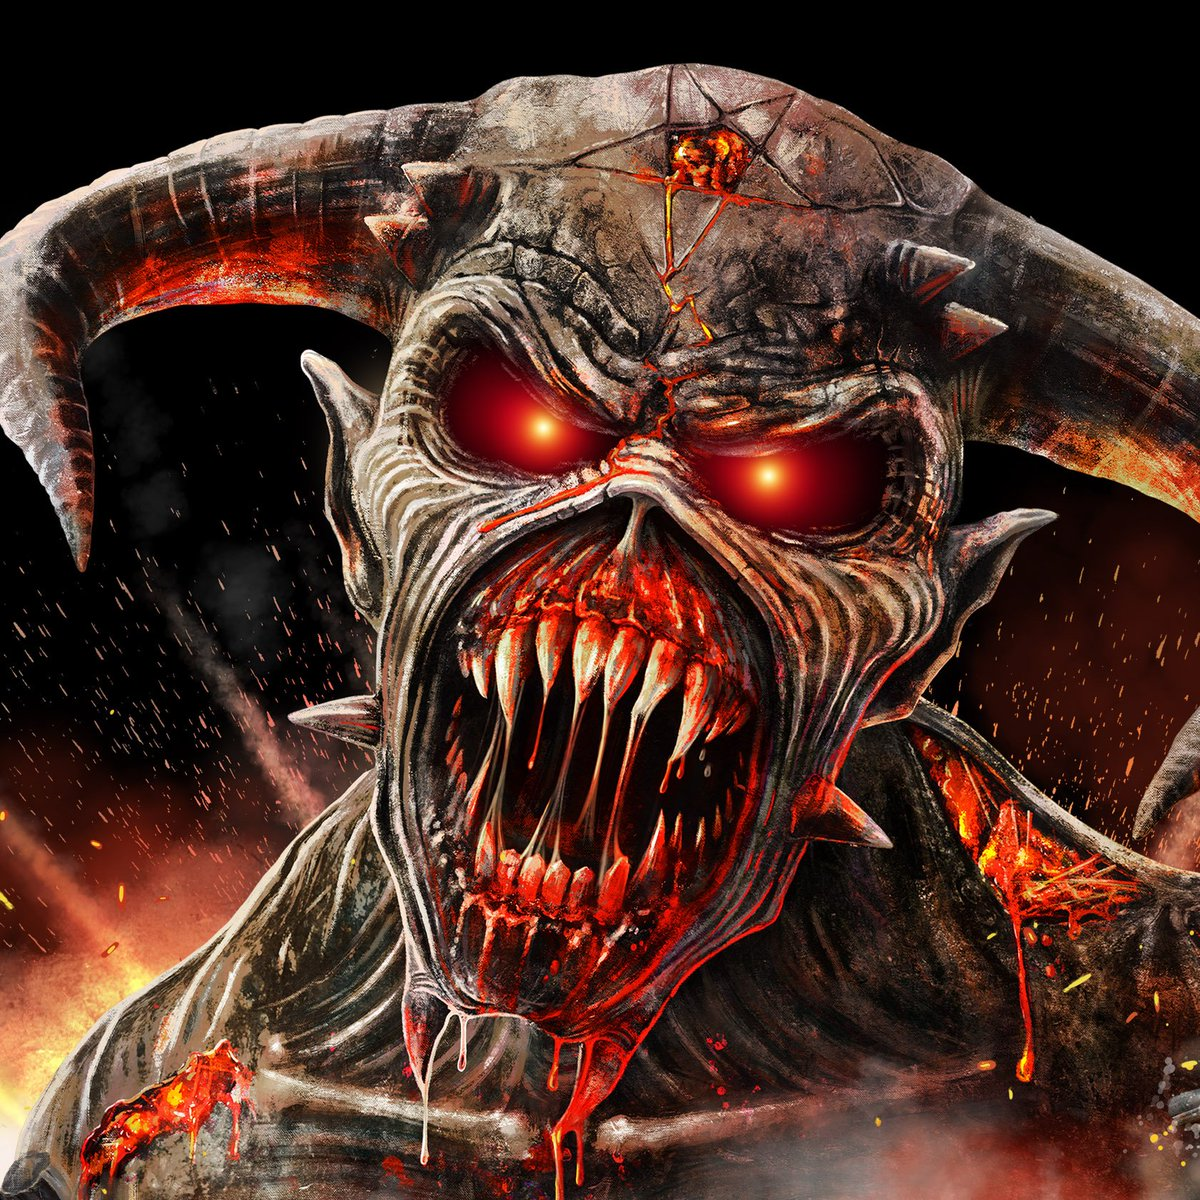 If you're already going crazy waiting for the #LegacyOfTheBeastTour2019 ...   Then why not follow our official tour playlist on Spotify!?  https://t.co/wH88enGYMW  #MusicMonday #IronMaiden #BePartOfTheLegacy